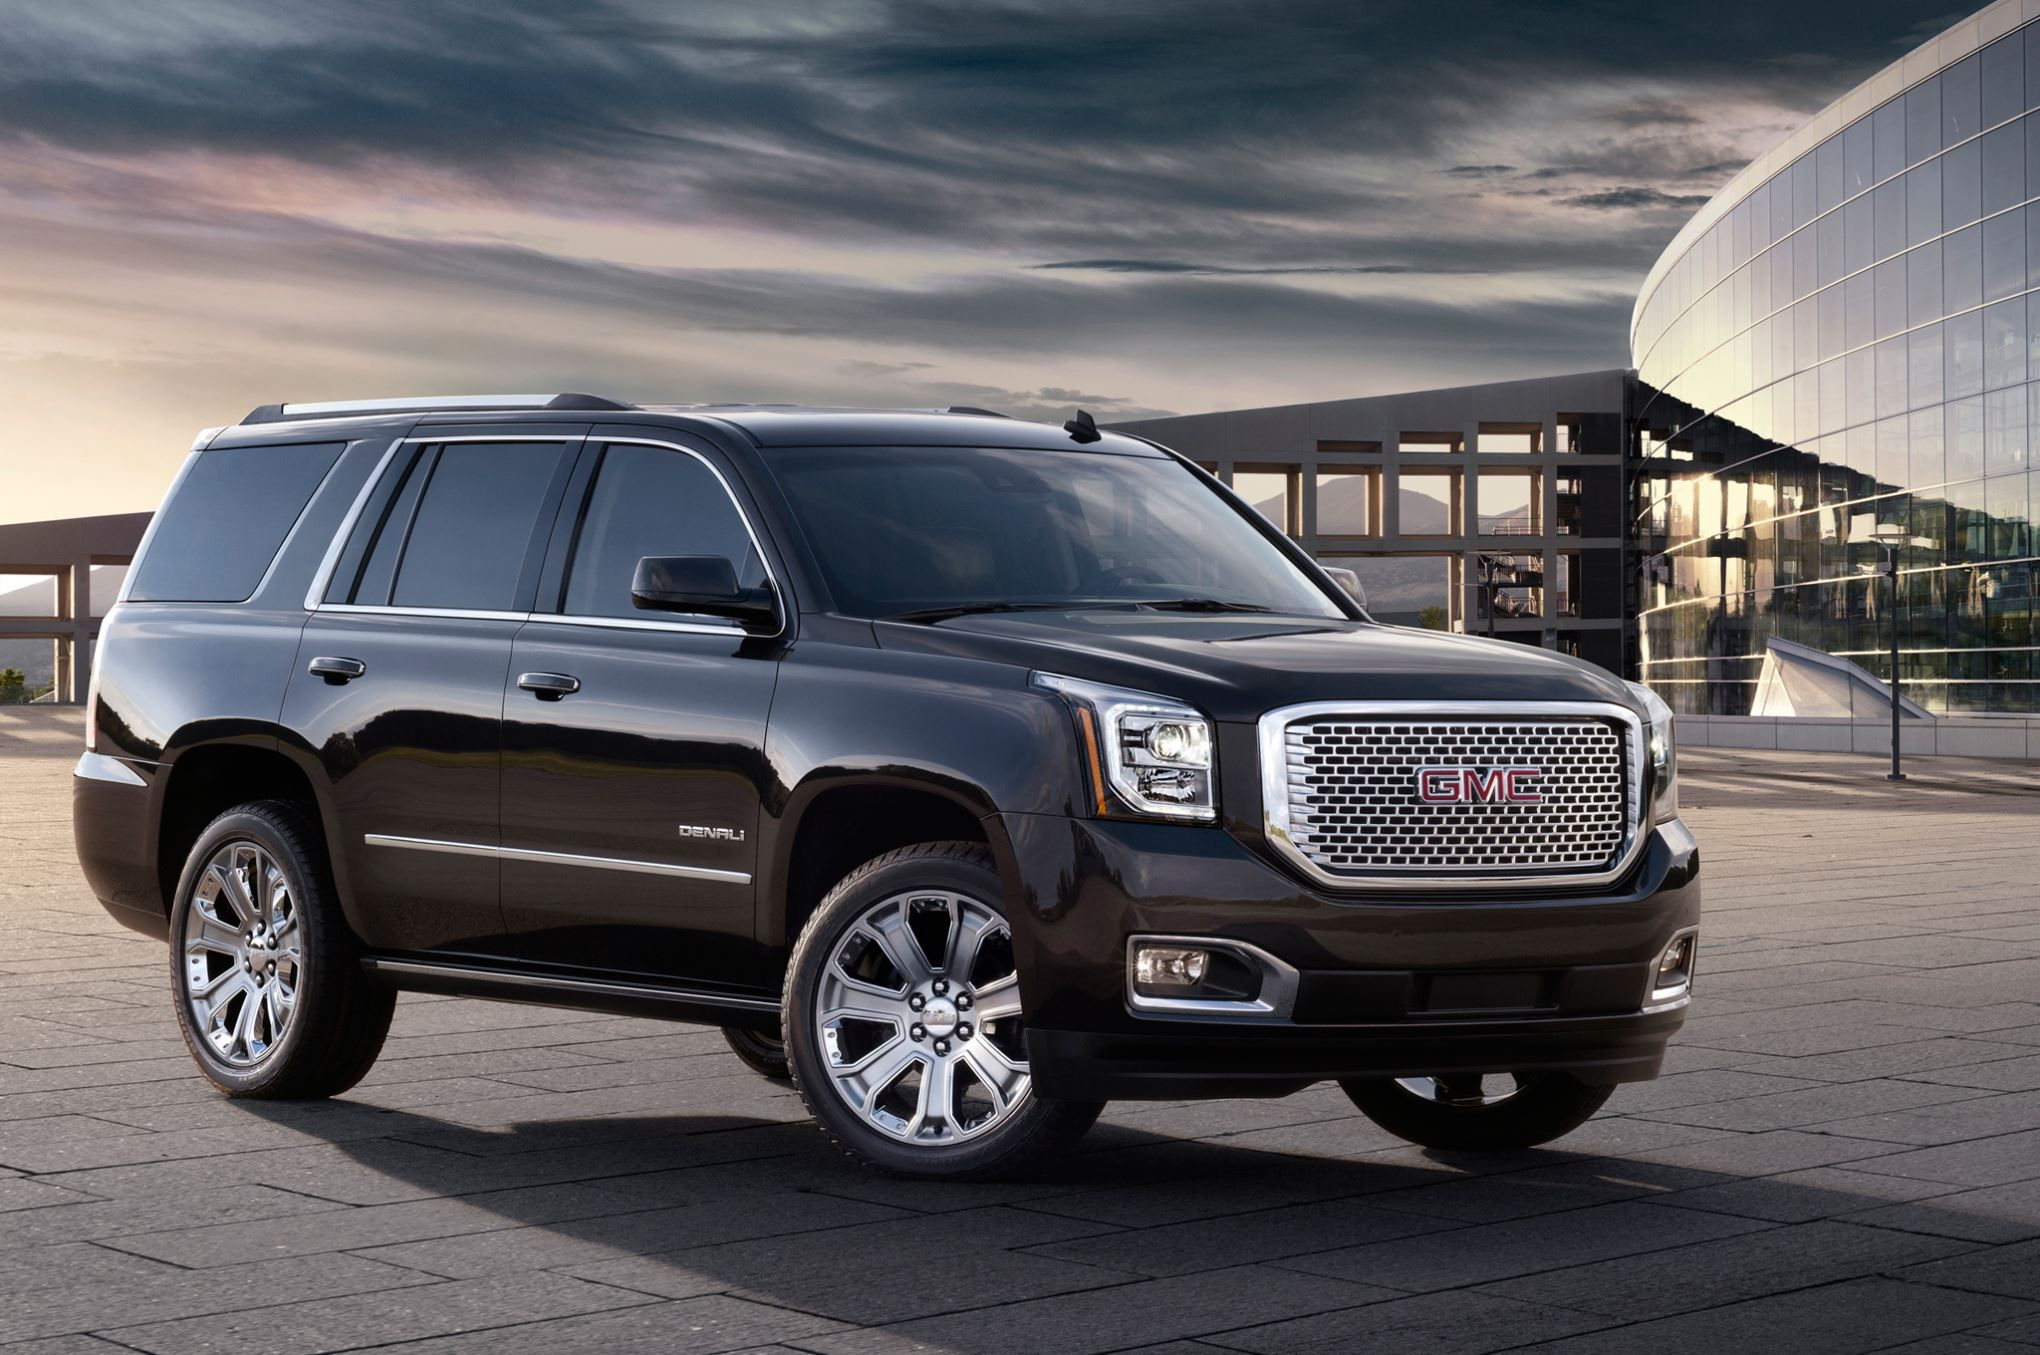 2015 Gmc Yukon Denali Mpgs Improve Thanks To Eight Speed Auto